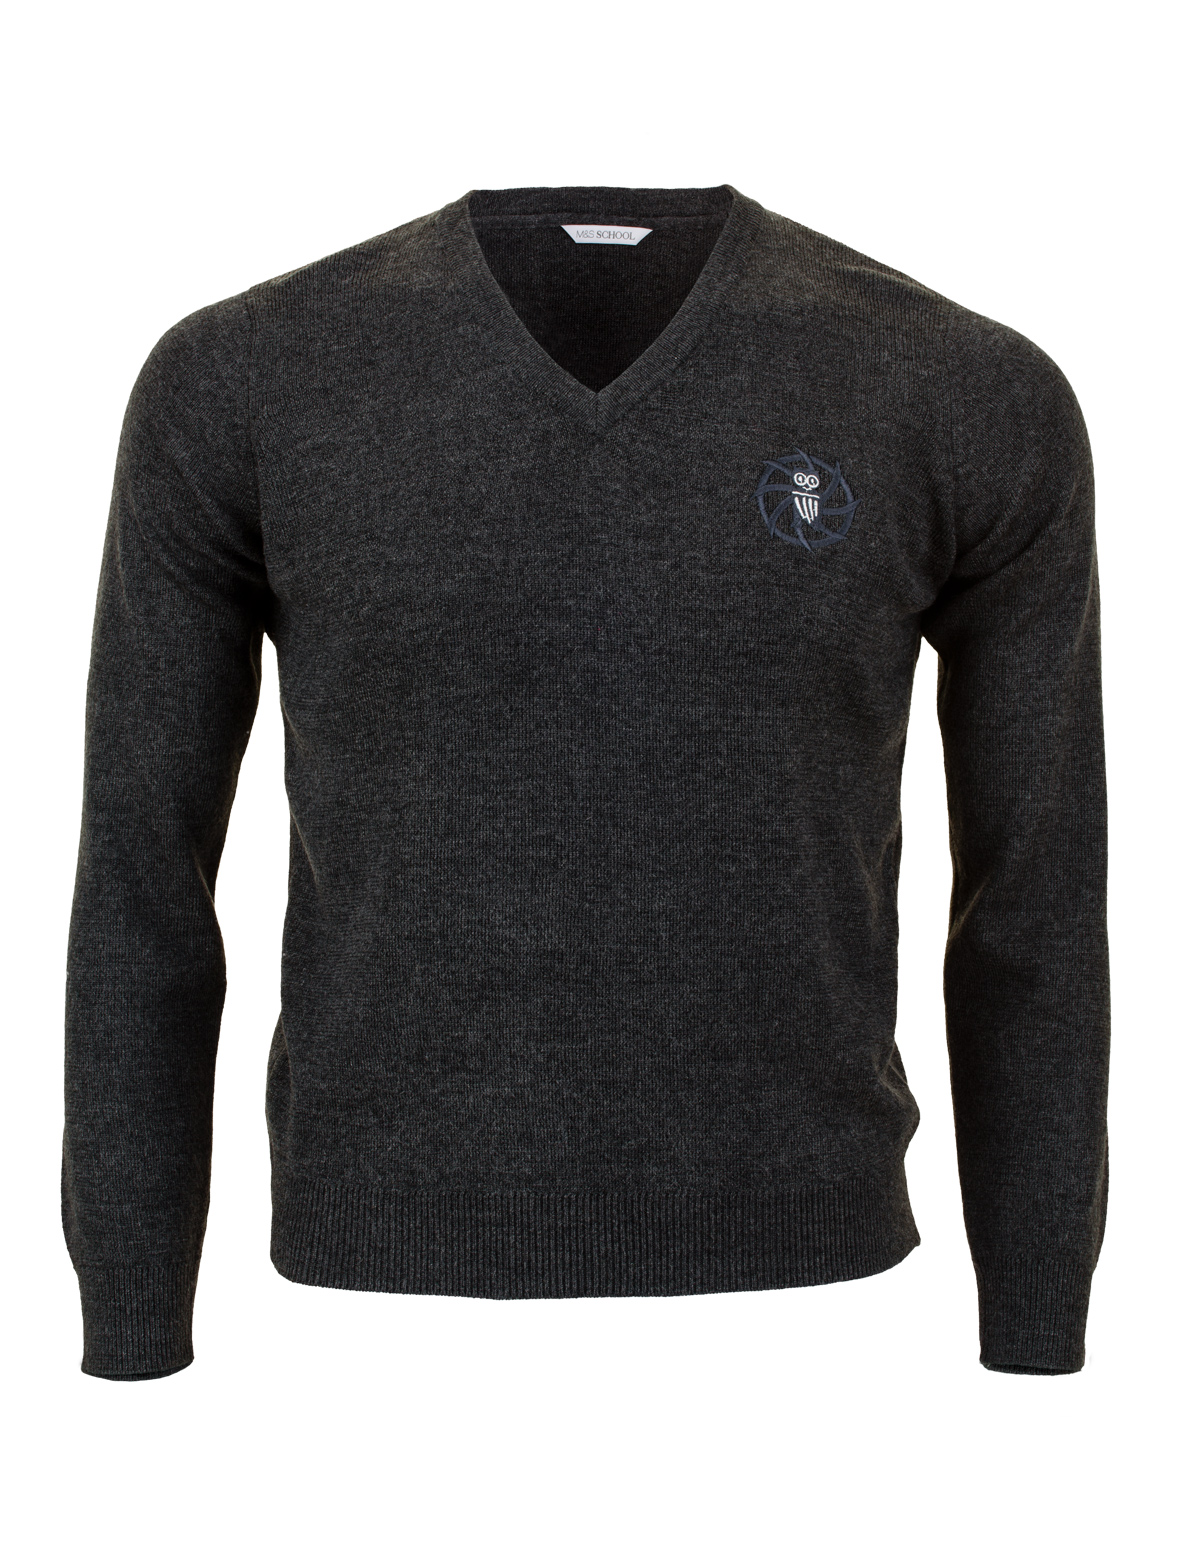 select for authentic Super discount top-rated latest Unisex Wool Blend V-Neck Jumper